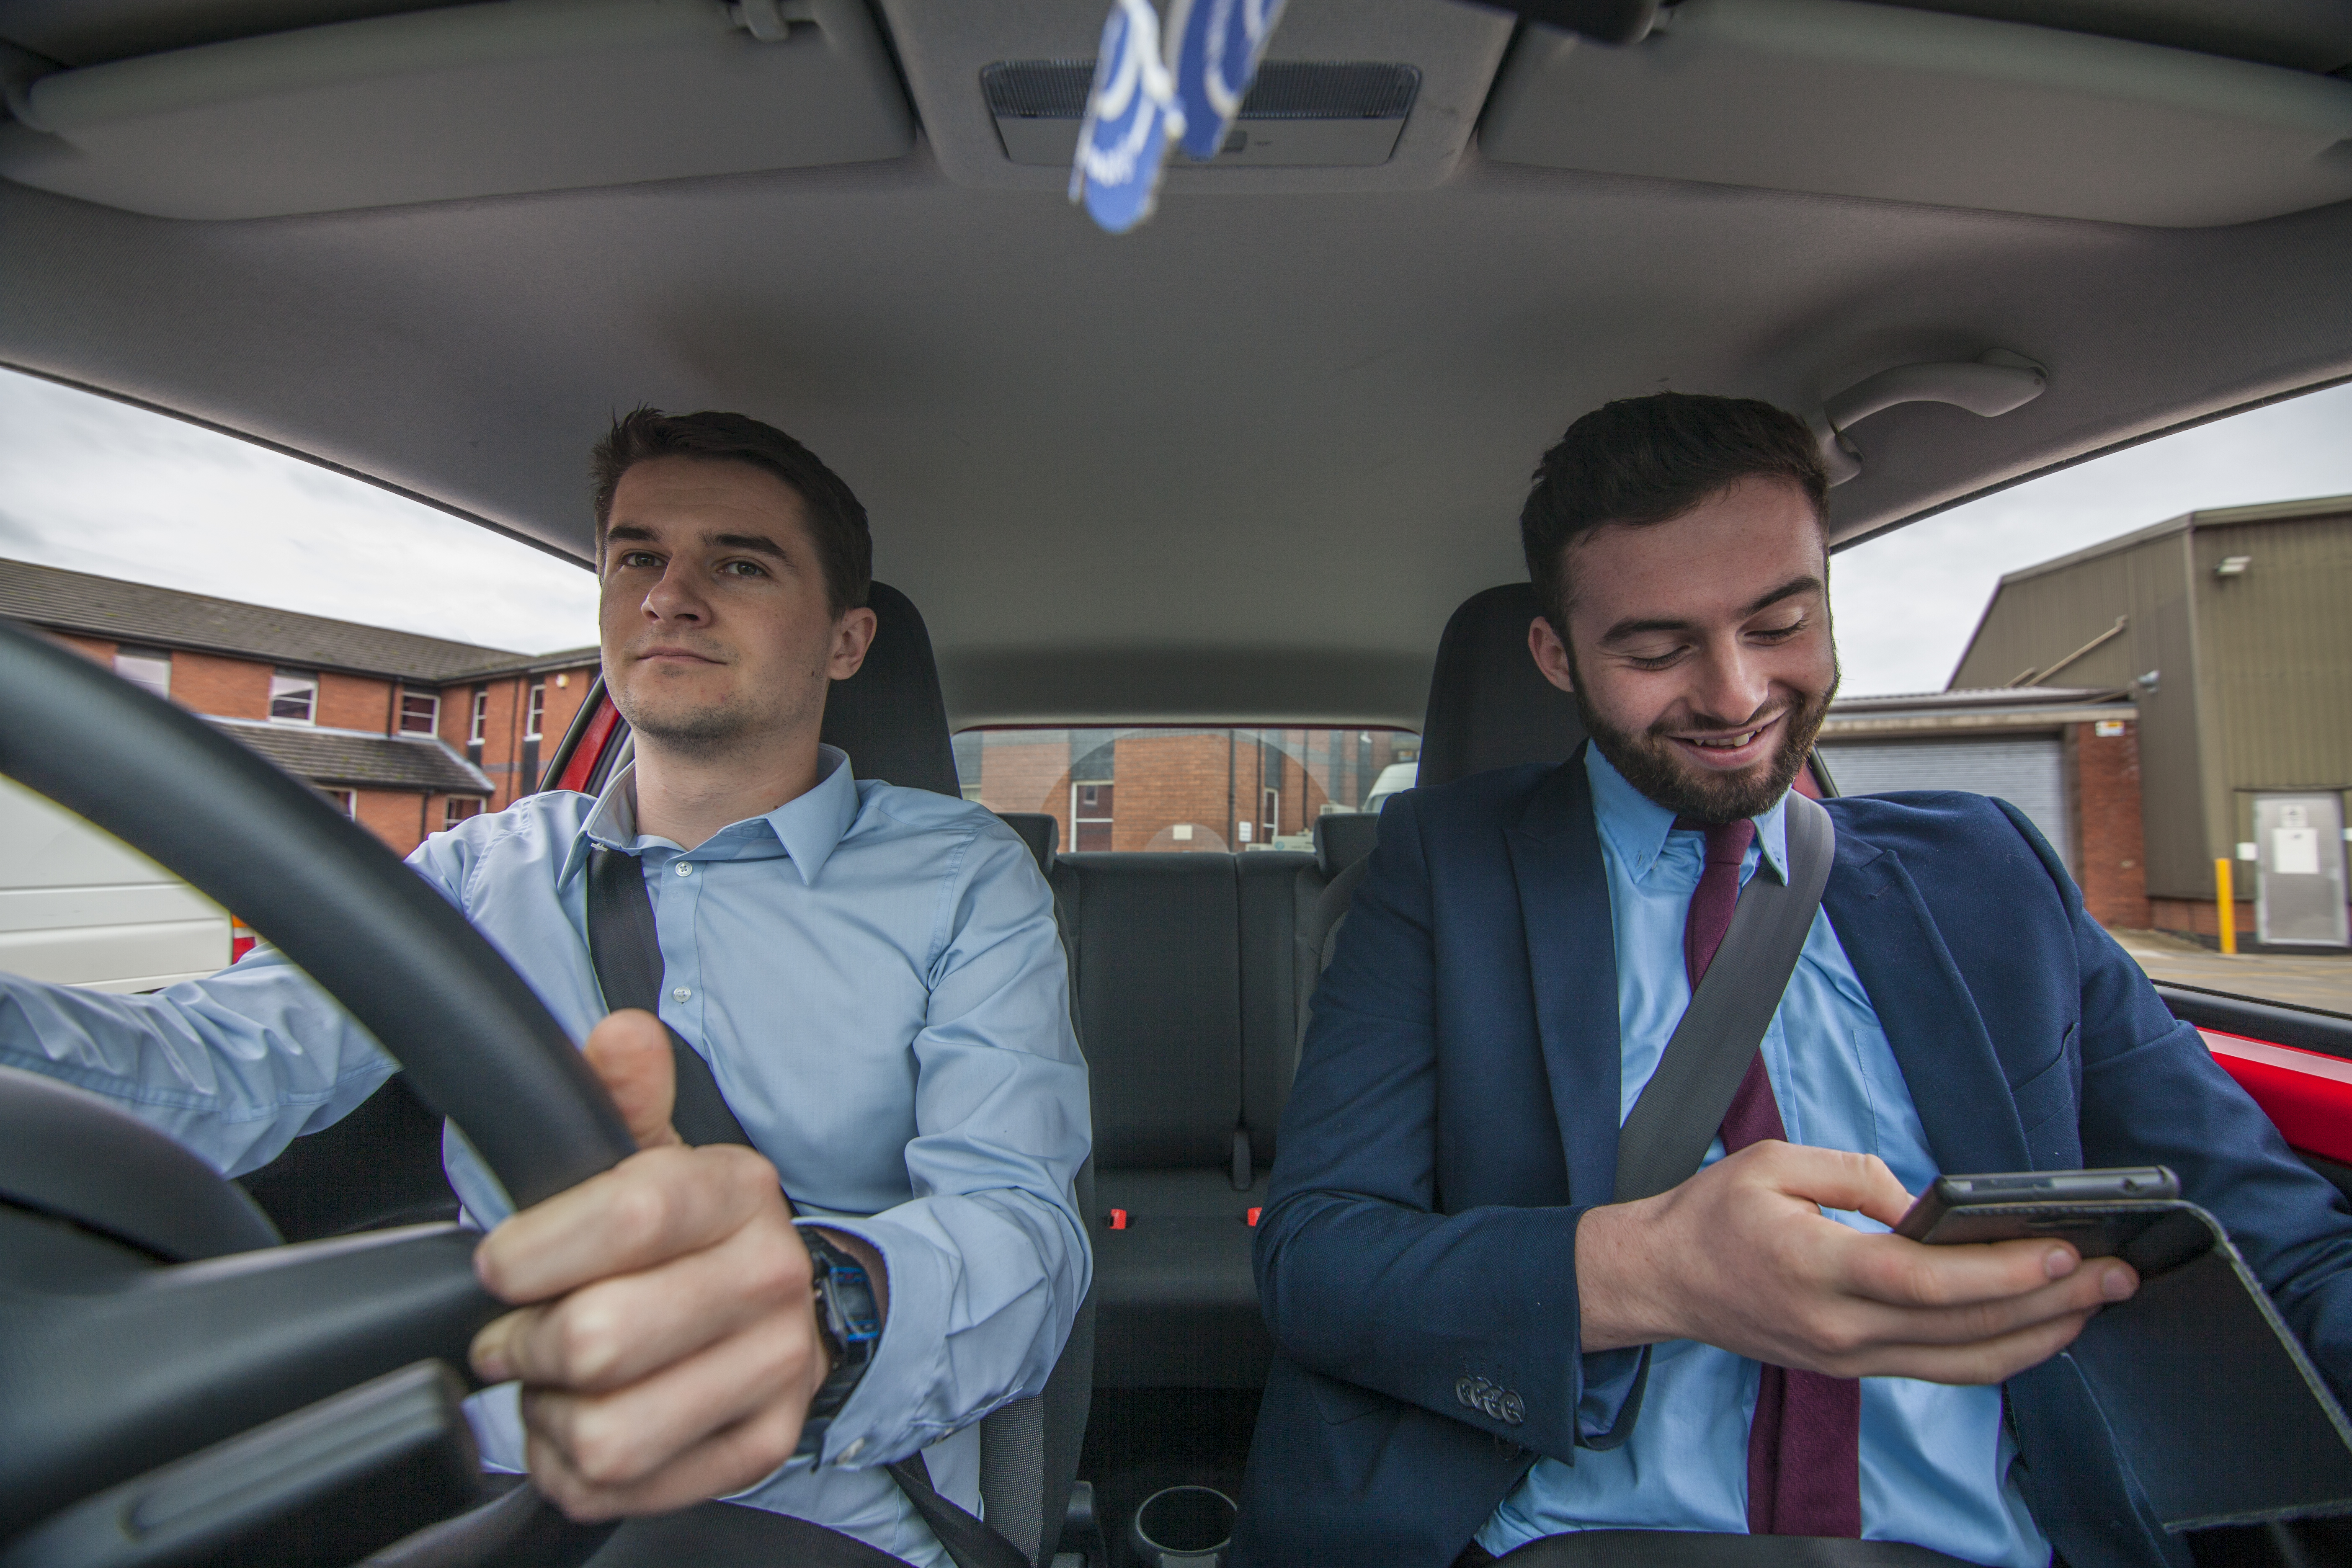 Businessmen From The Dashboard